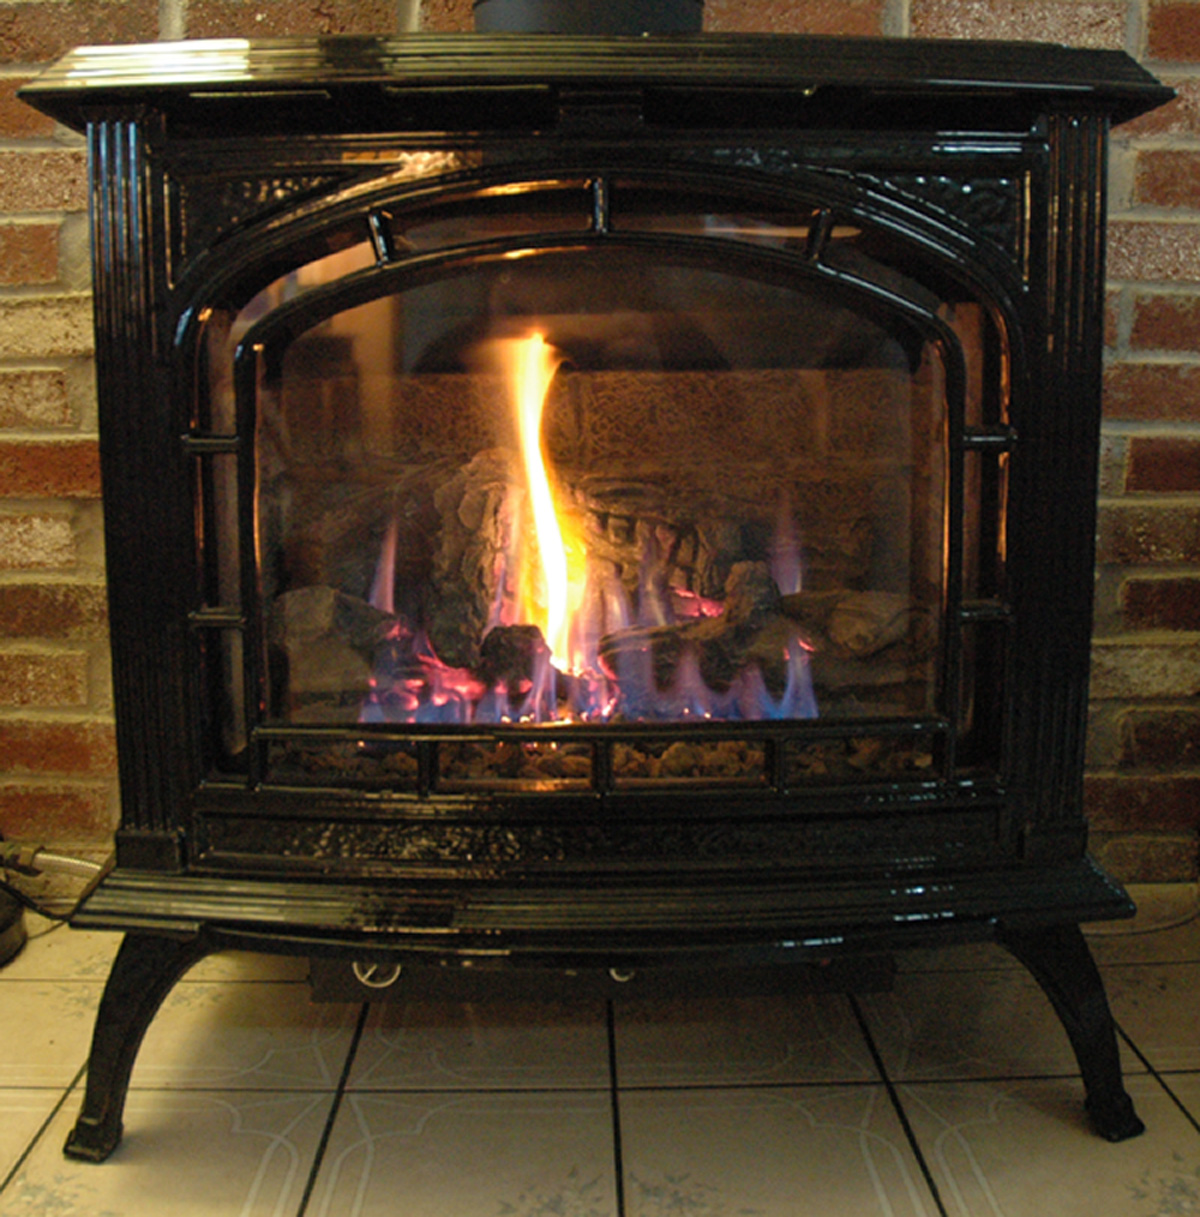 Propane Fireplace Heaters Gas Direct Vent Space Heaters, Fireplaces And Wall Furnaces